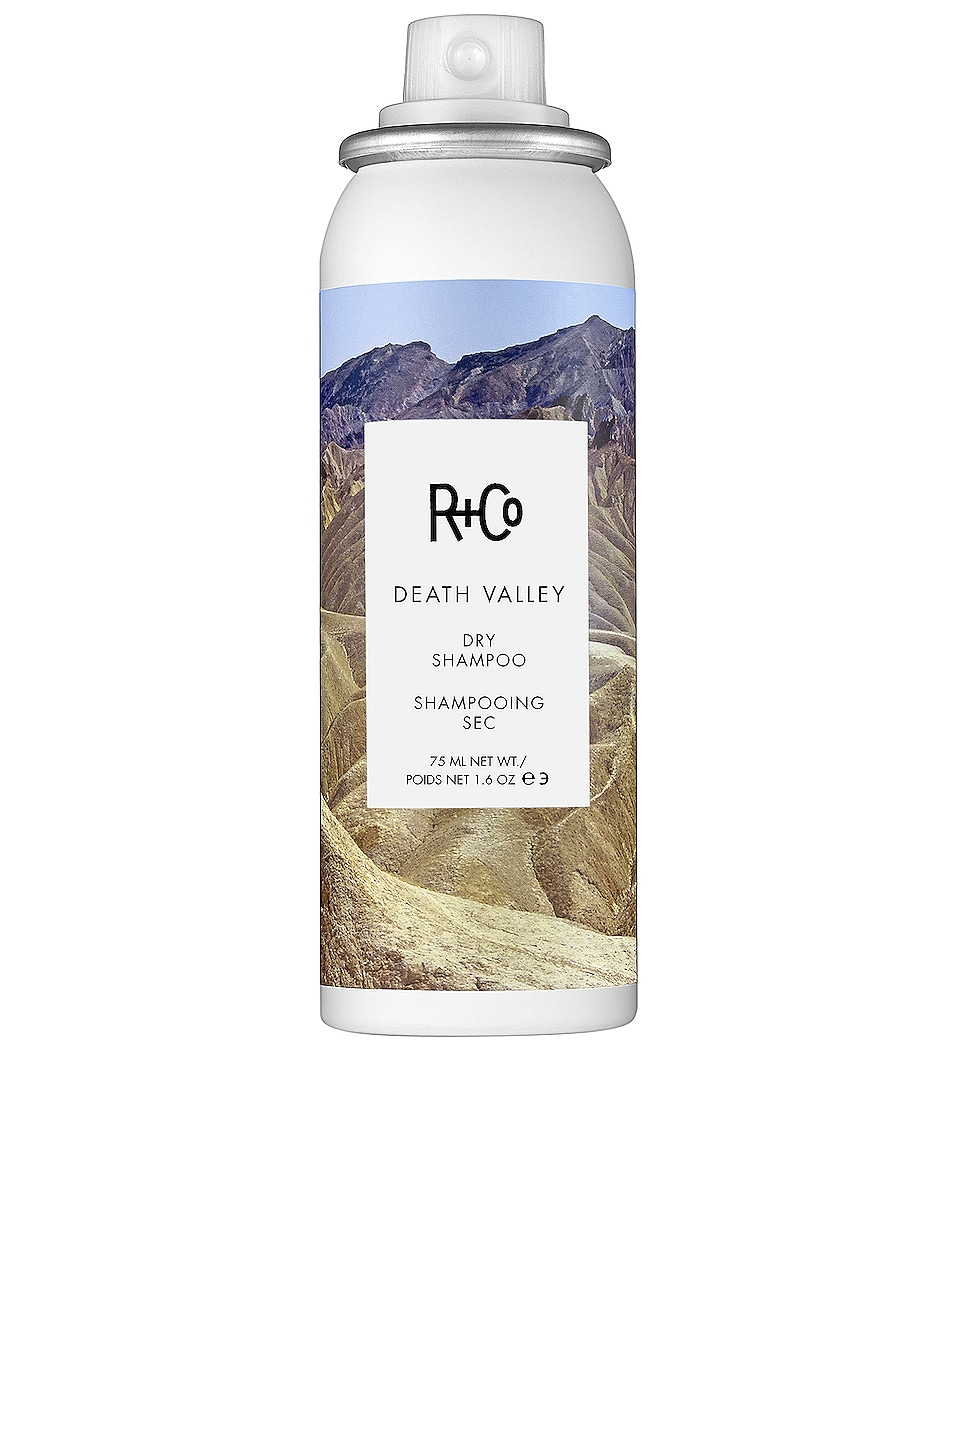 R+Co SHAMPOING SEC DEATH VALLEY